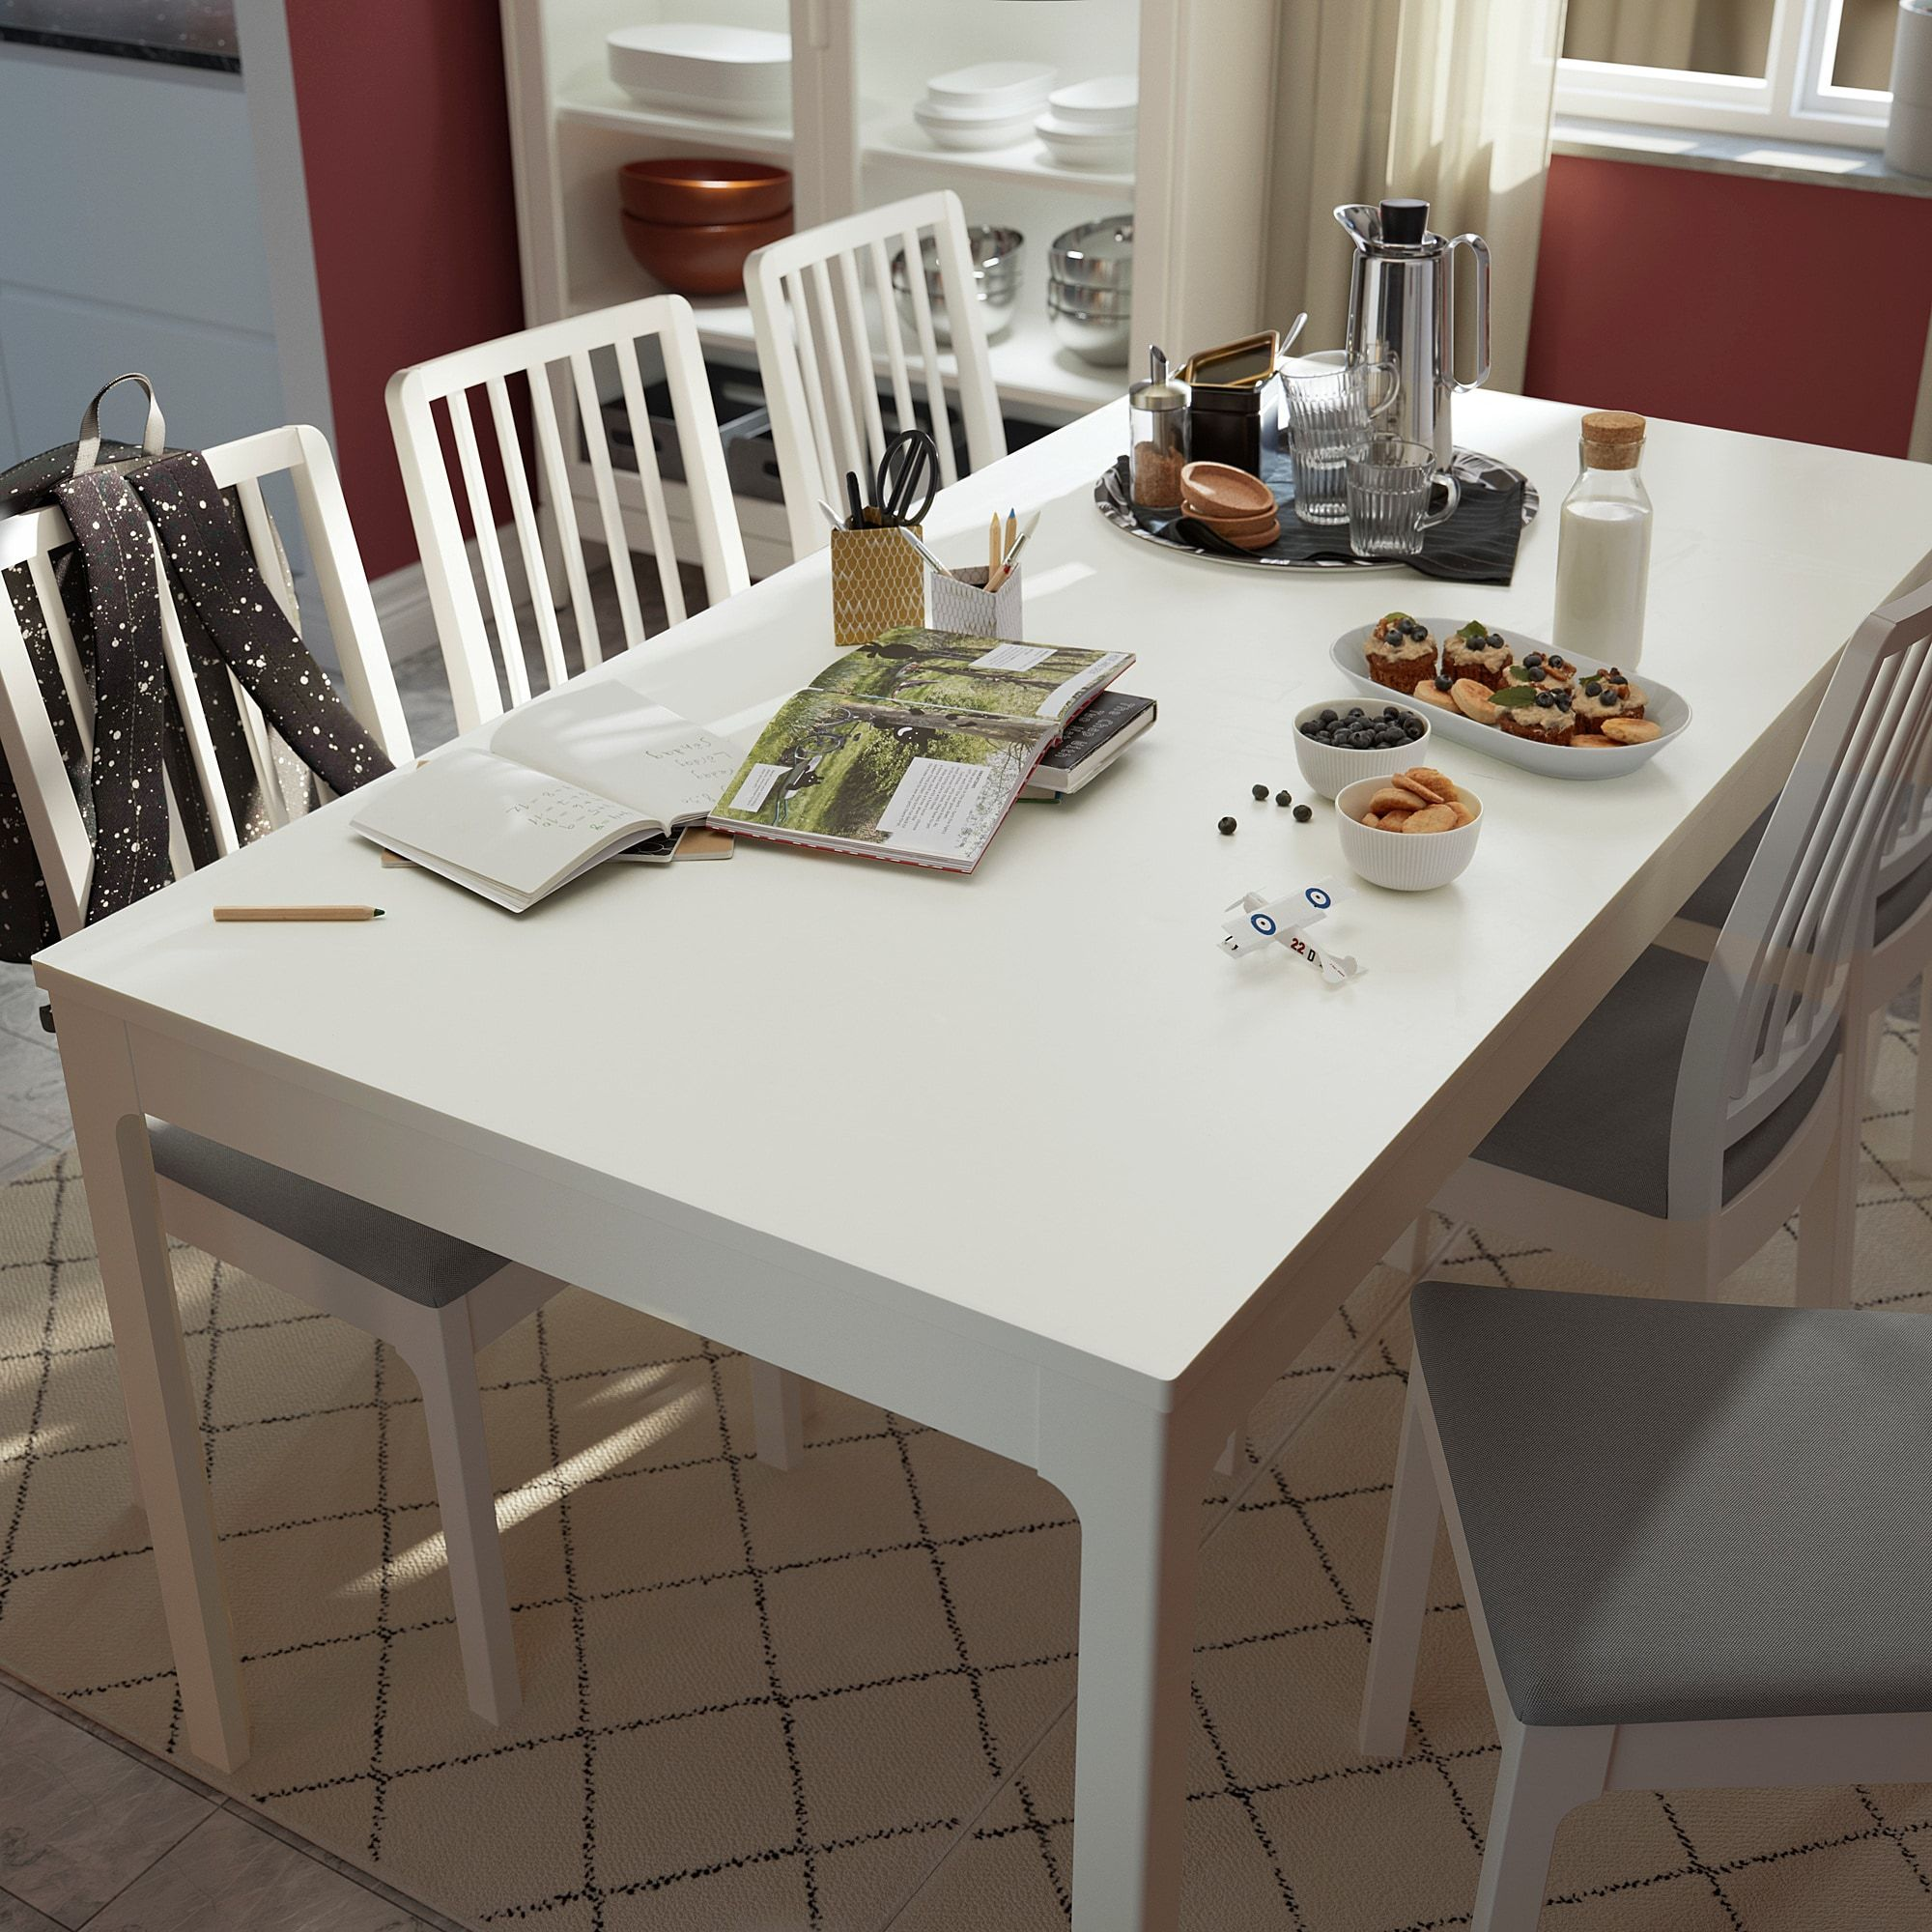 Ekedalen Extendable Table White Ikea Canada Ikea Dining Table Small Space Extendable Dining Table White Kitchen Table